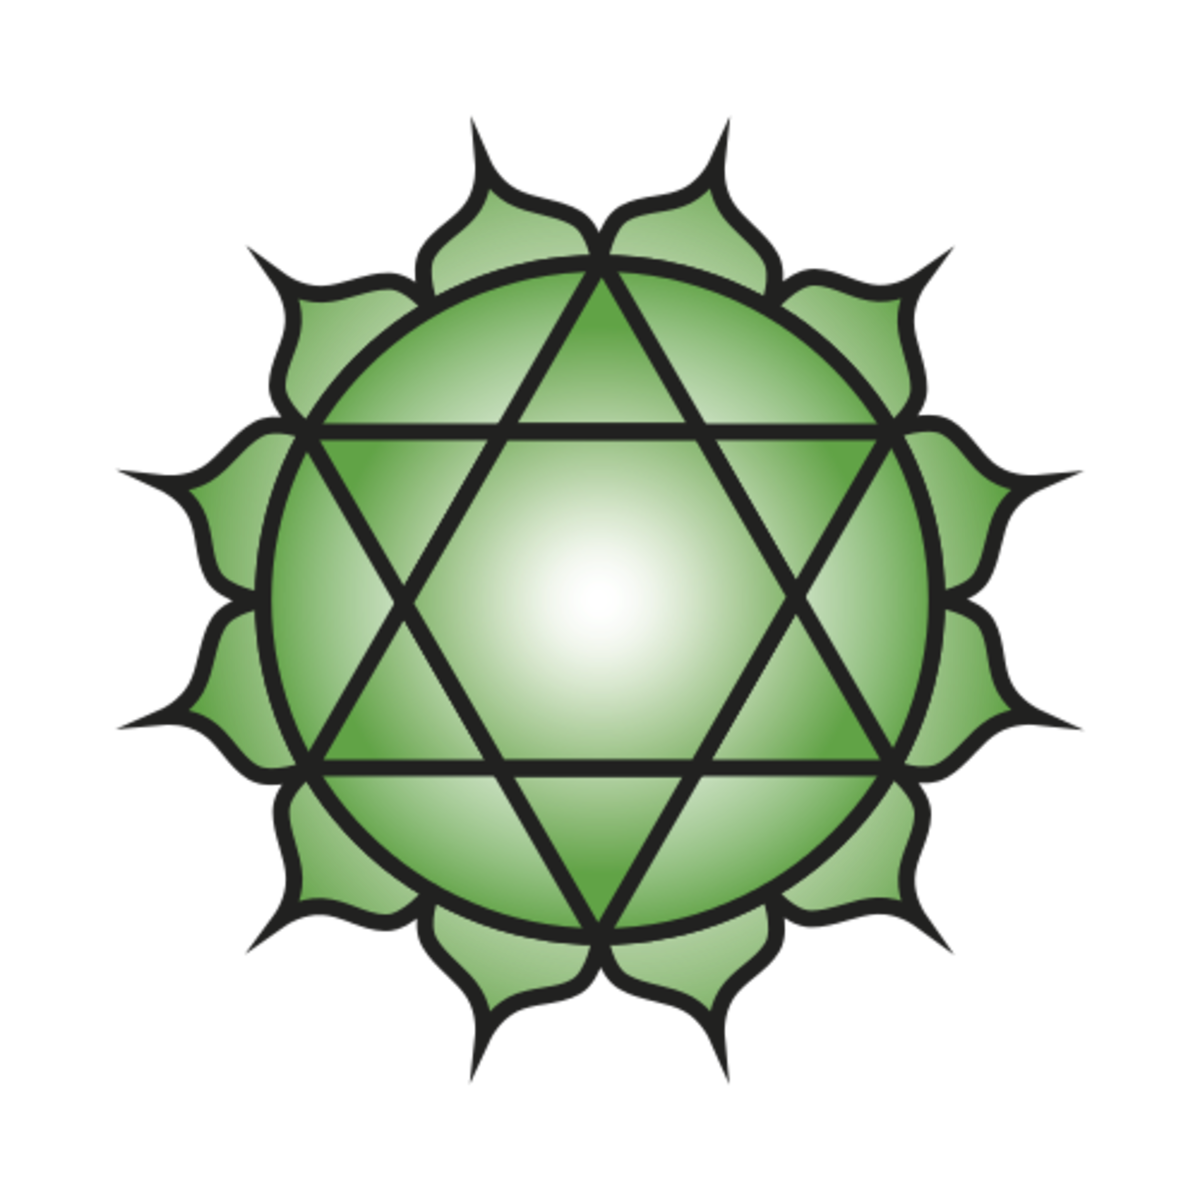 Green is the color of the heart chakra.